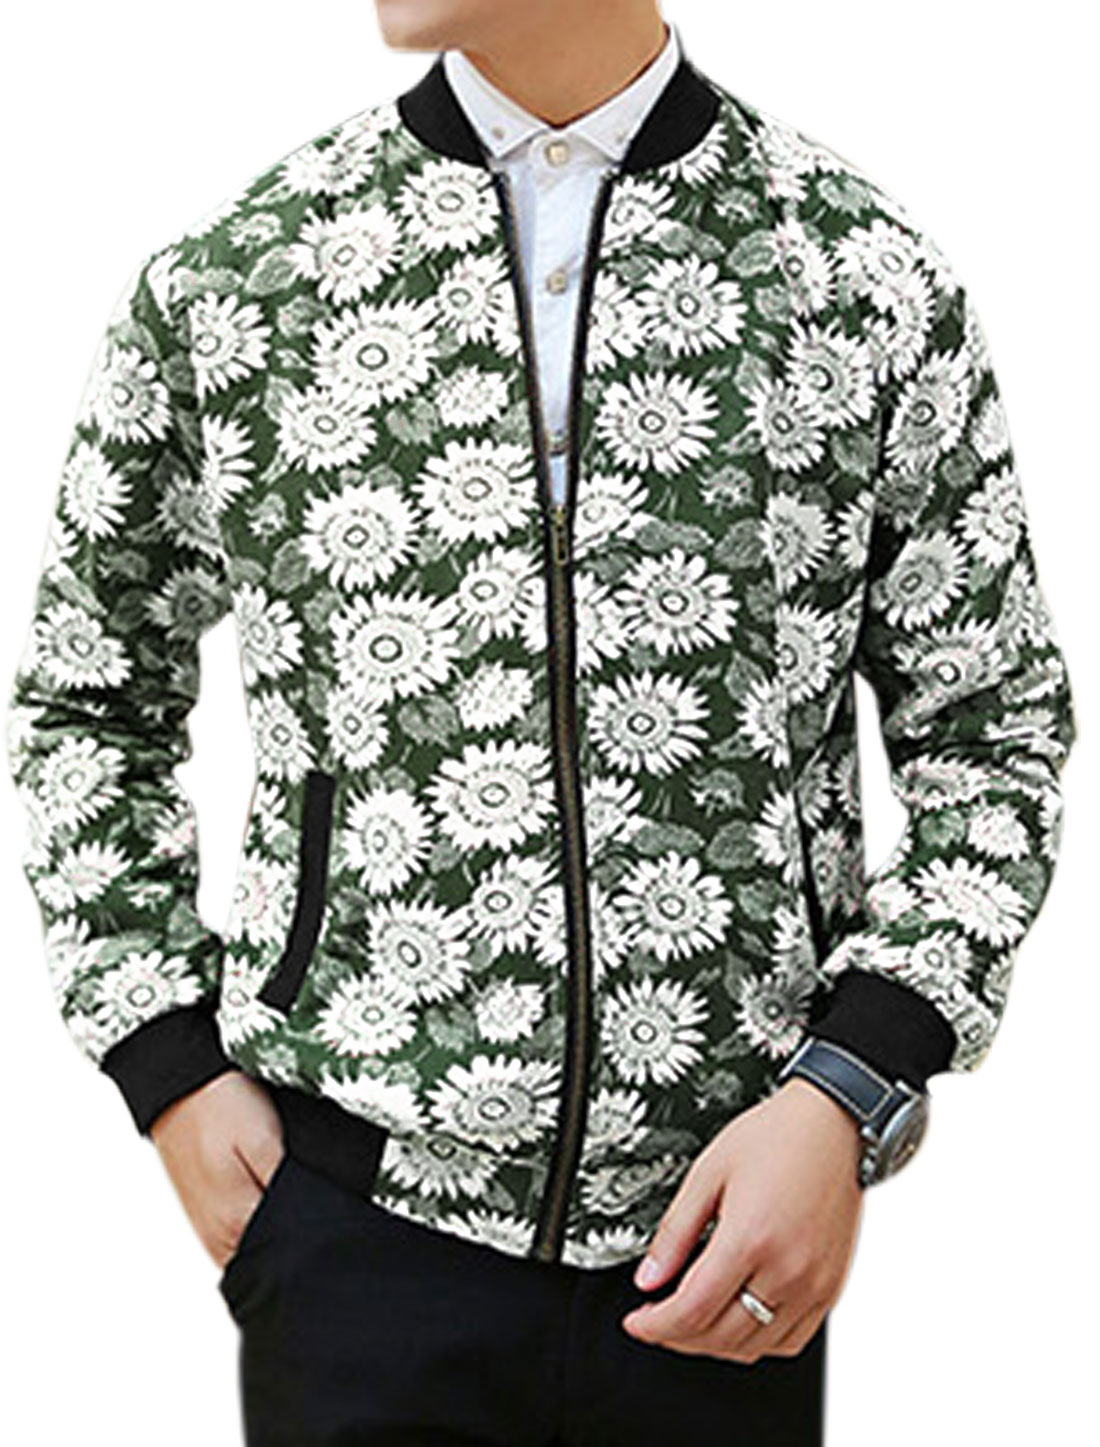 Men Floral Prints Ribbed Trim Two Front Pockets Fashion Jacket Army Green M